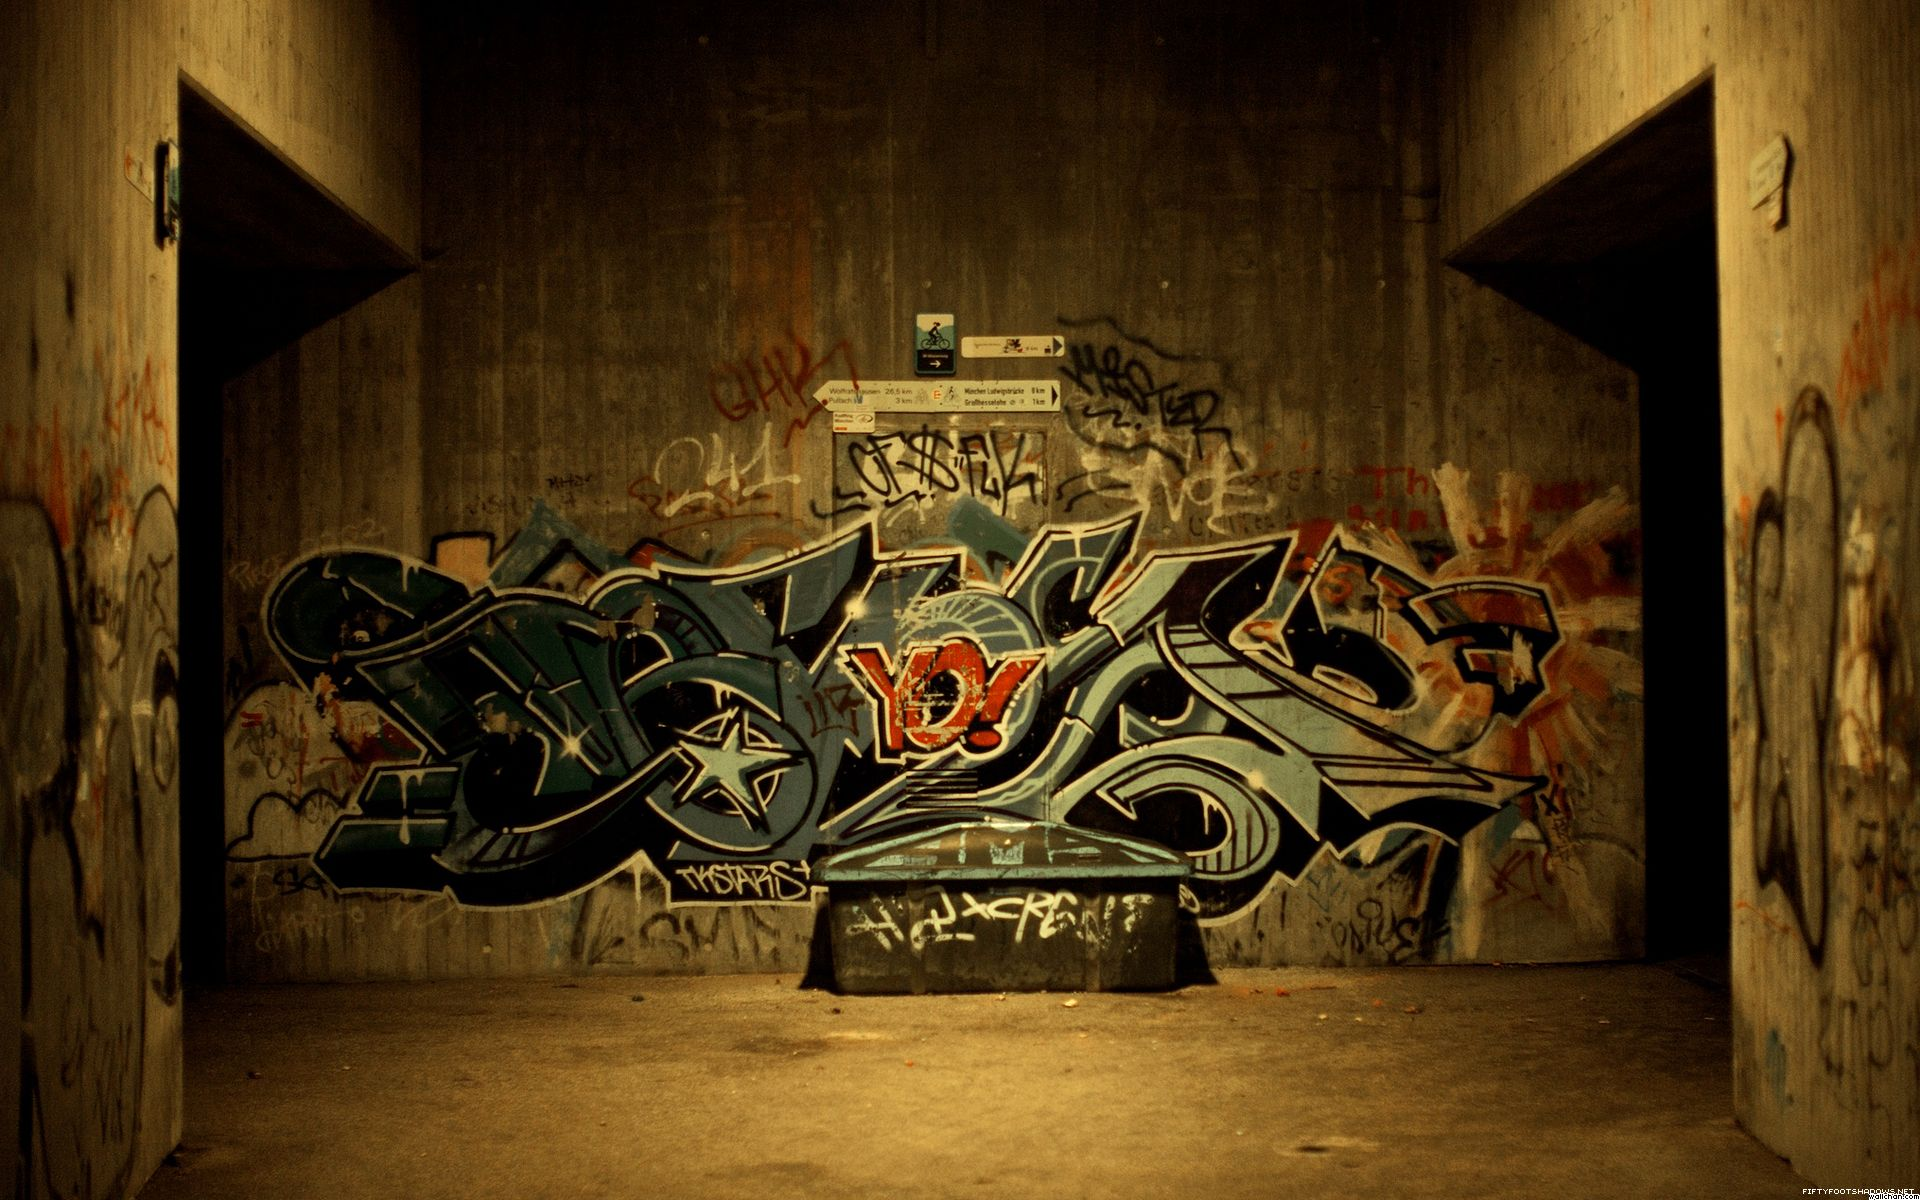 Hip Hop Graffiti Unique Wallpaper 1920x1200 Full HD Wallpapers 1920x1200